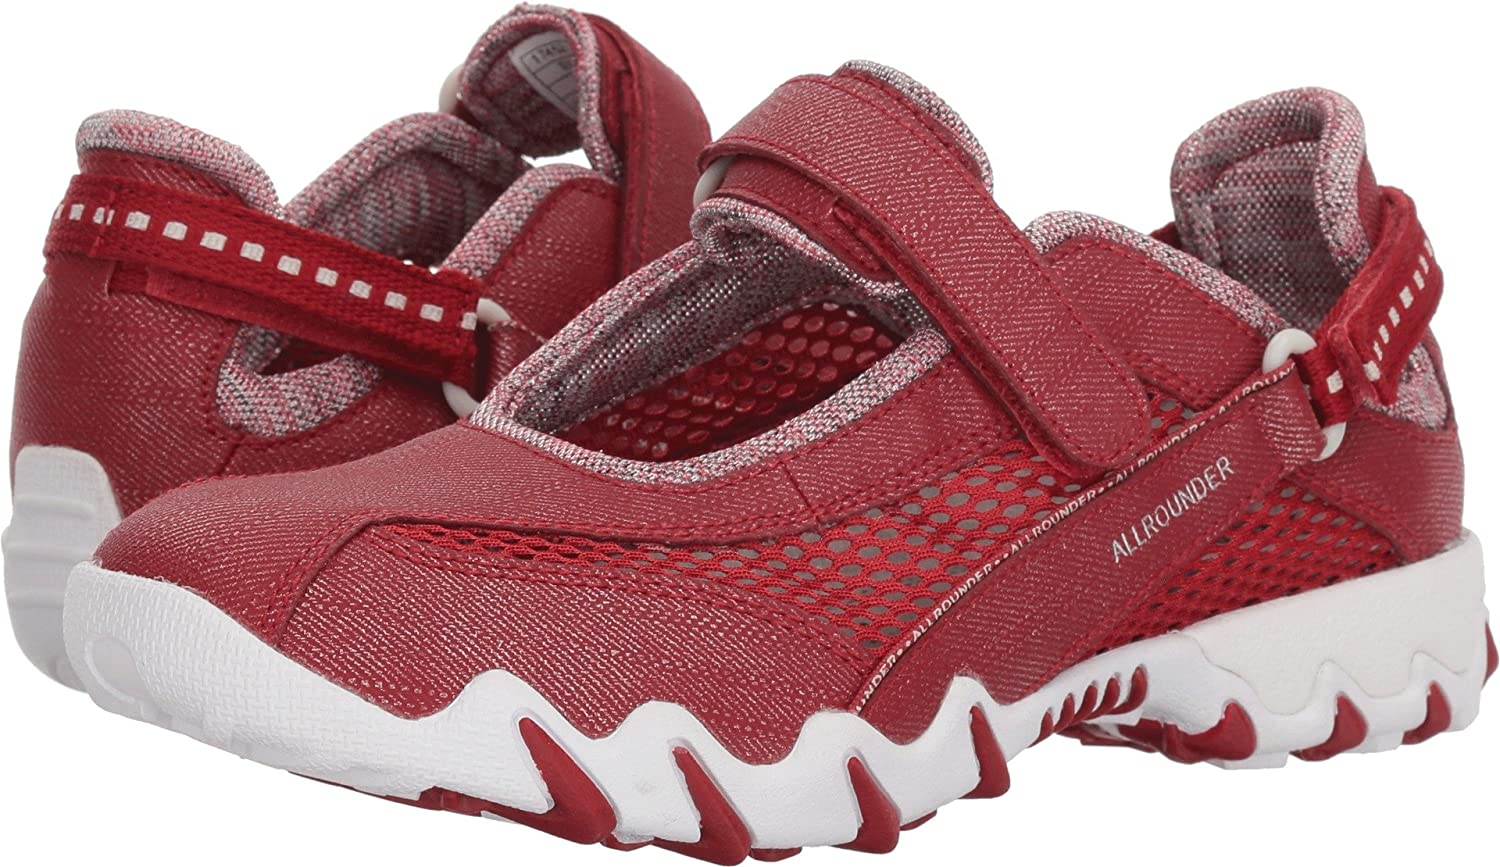 Allrounder by Mephisto Womens NIRO B075HZV16X 37.5 M EU|Rosso Jeanstyle/Cool Grey Open Mesh